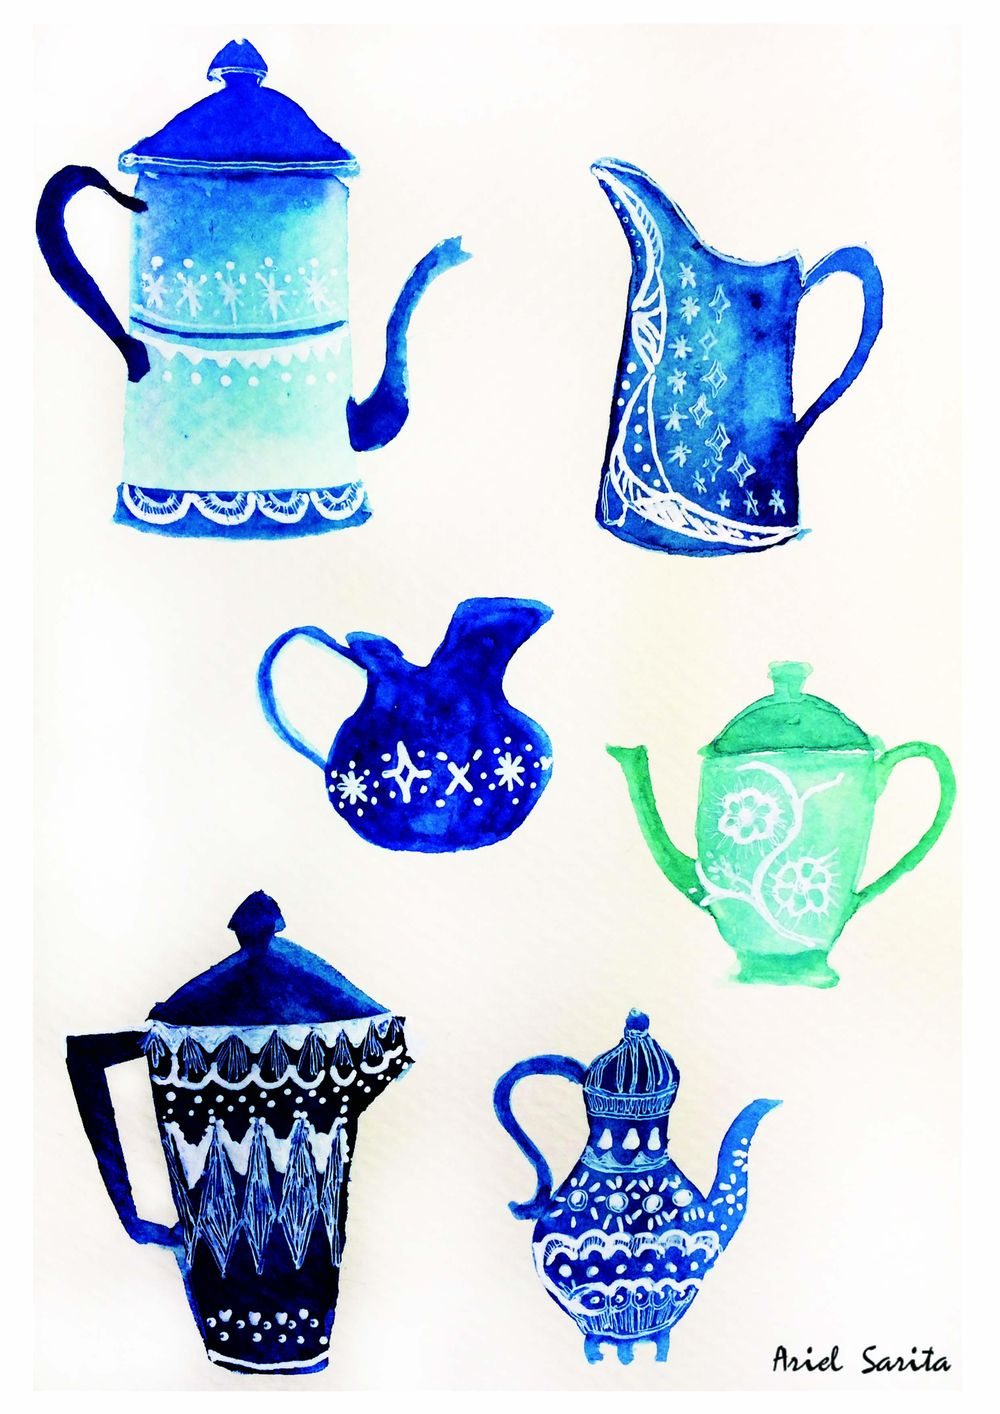 coffee pot try - image 1 - student project